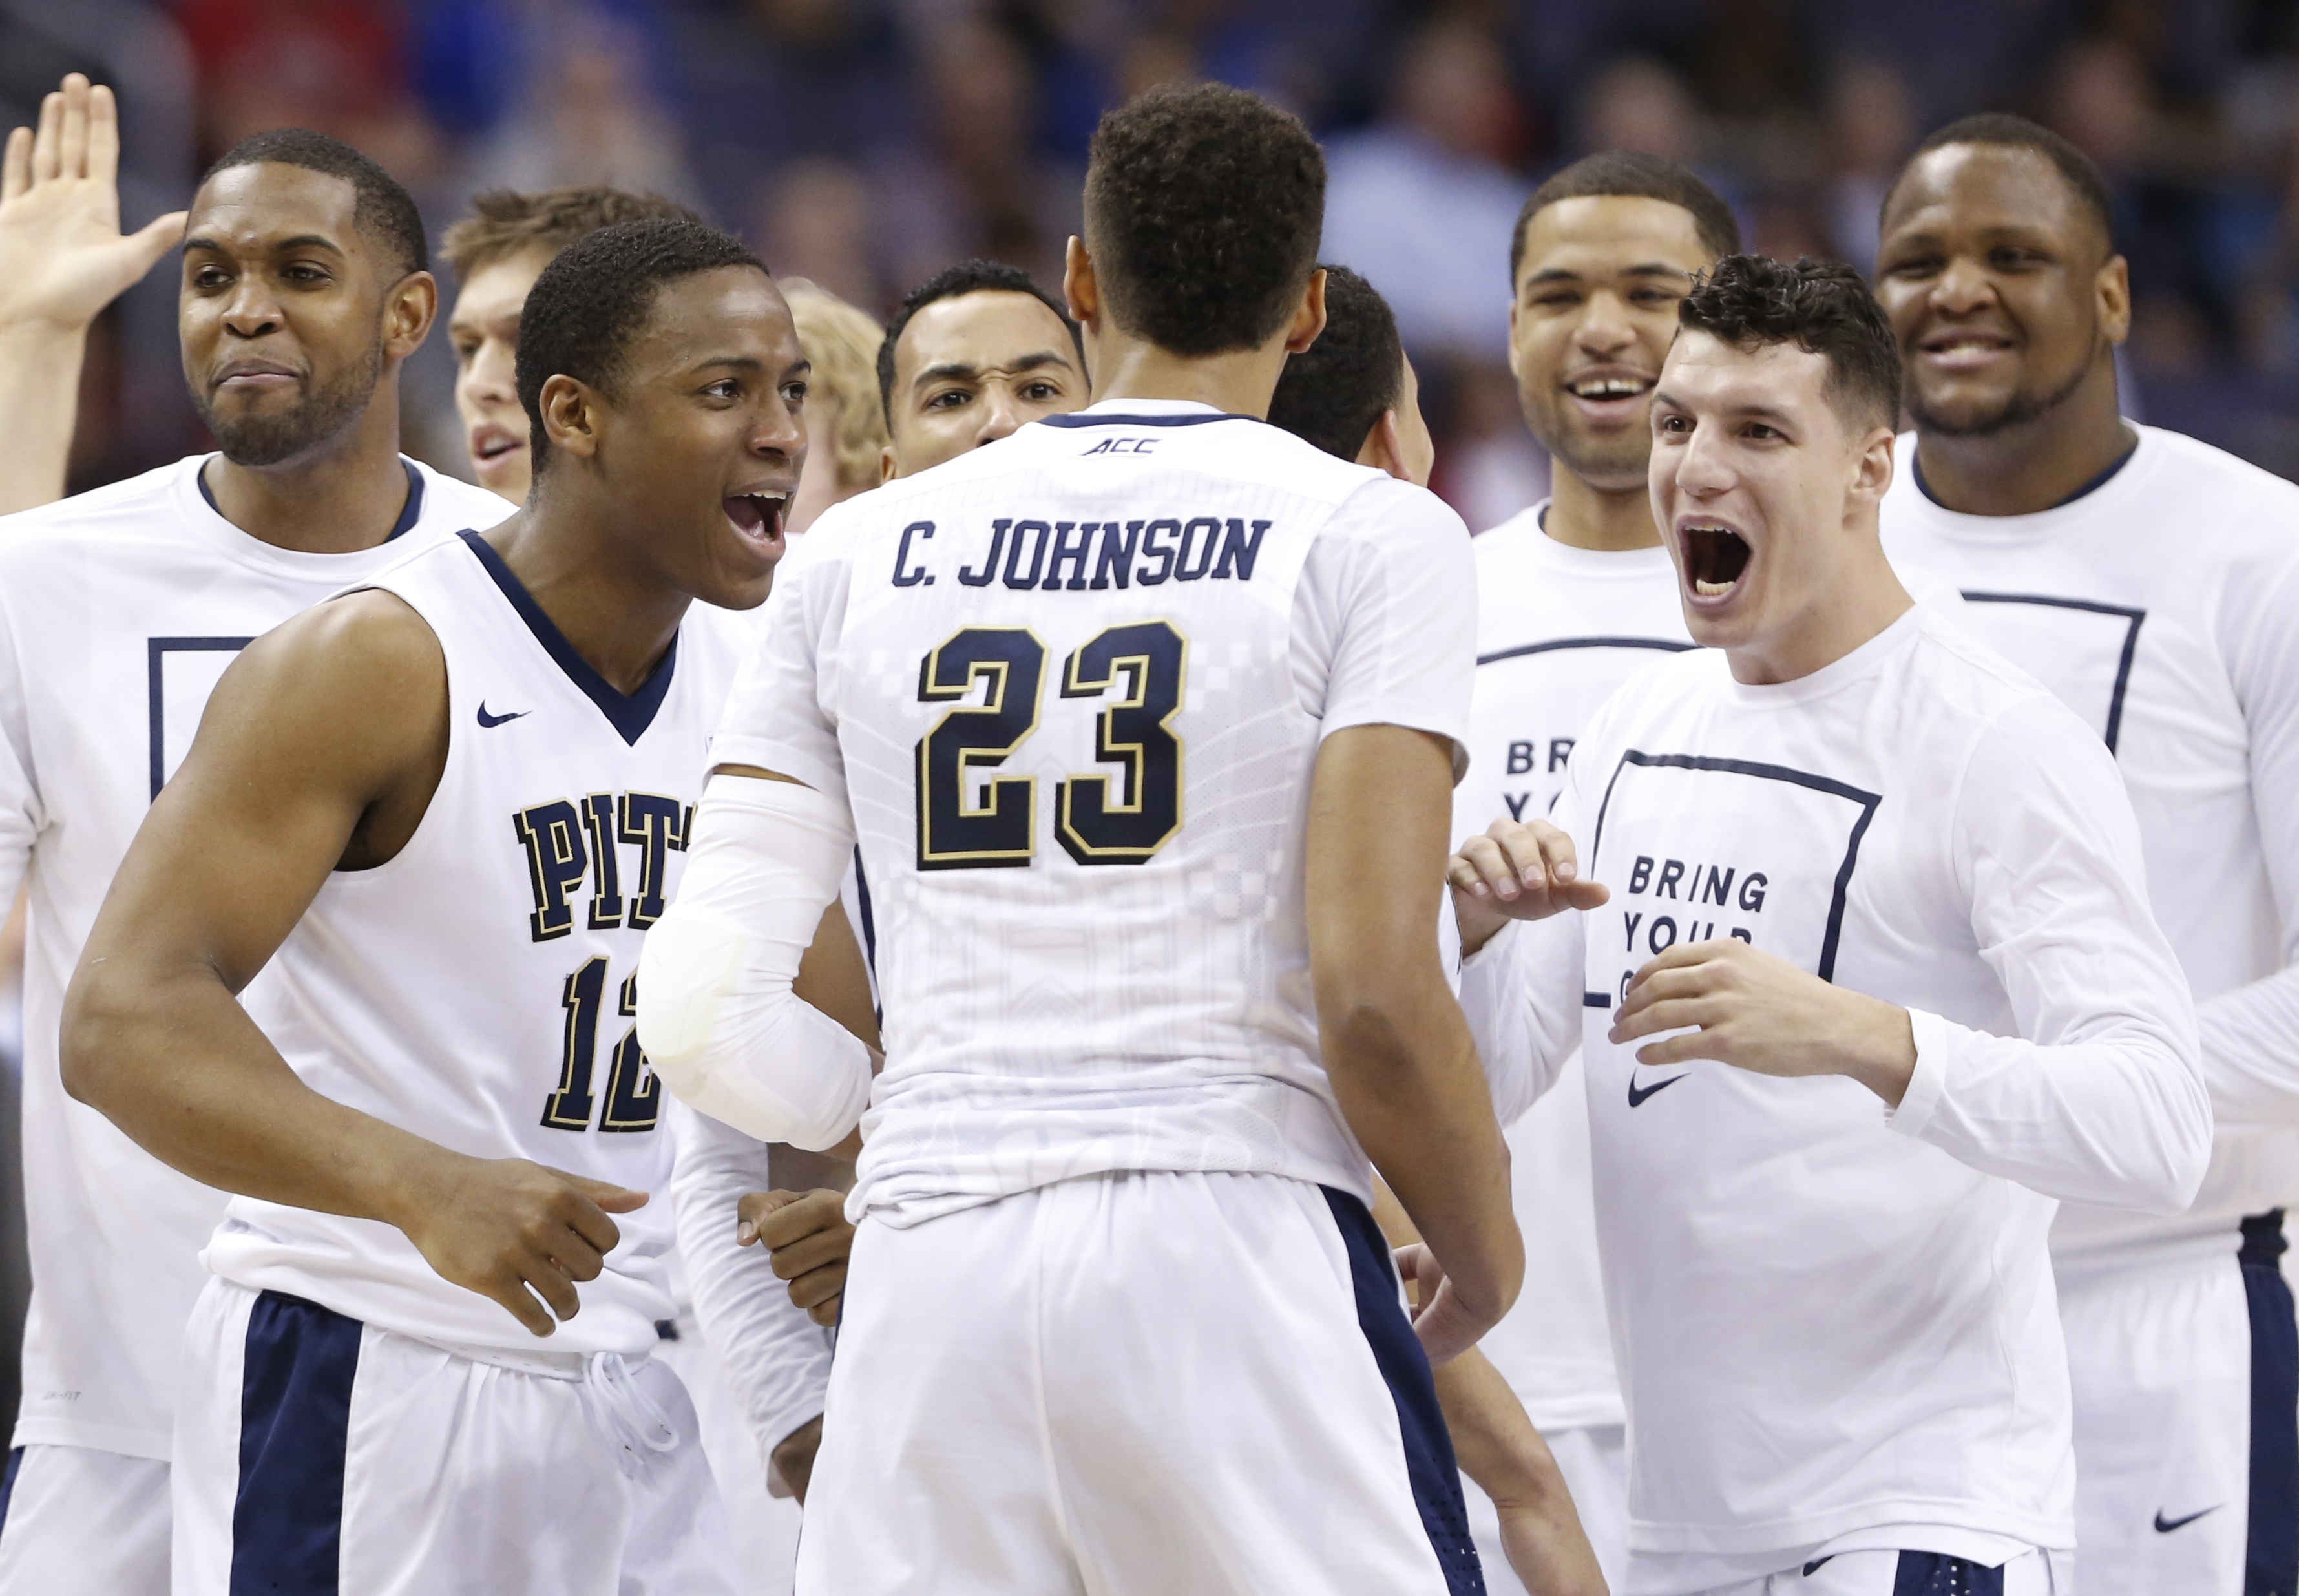 Pittsburgh guard Cameron Johnson (23) is welcomed to the bench after a score during the second half of an NCAA college basketball game in the Atlantic Coast Conference tournament in Washington , Wednesday, March 9, 2016. (AP Photo/Steve Helber)